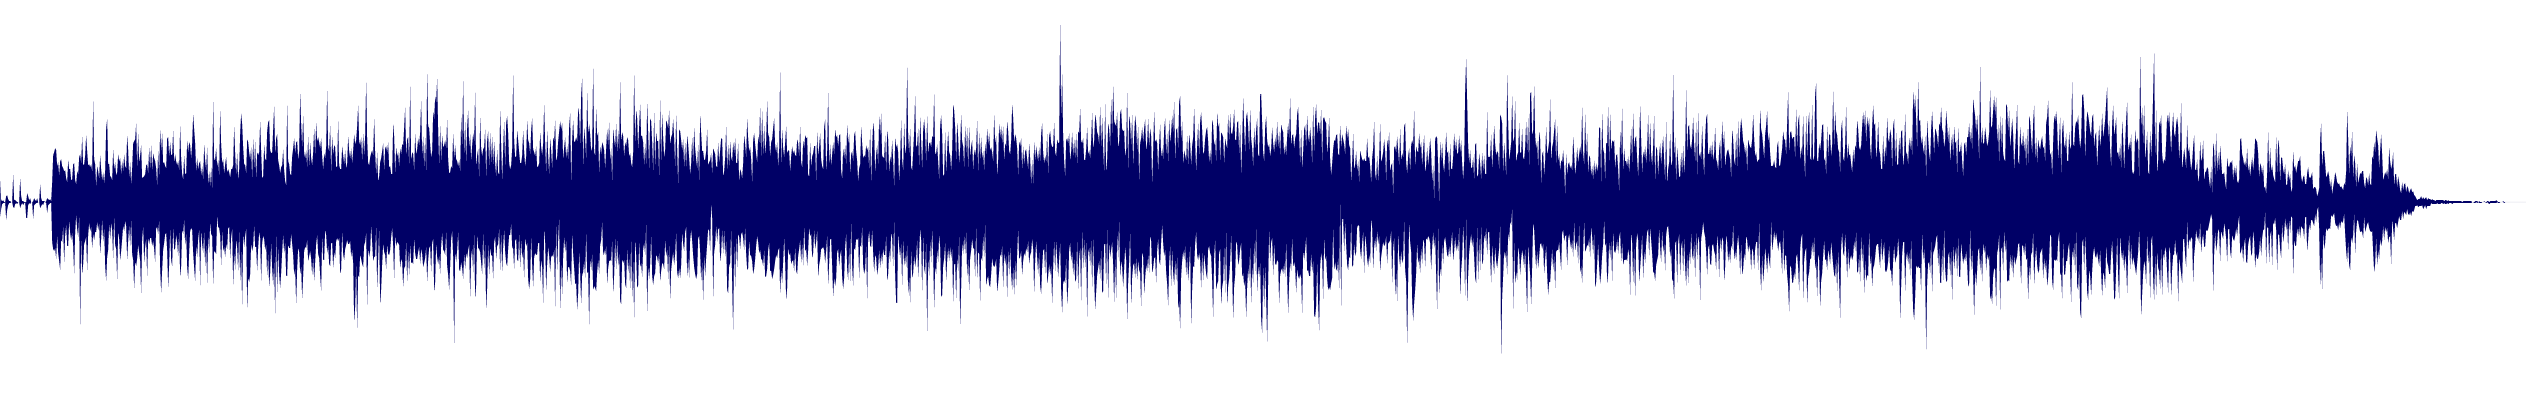 waveform of track #103617